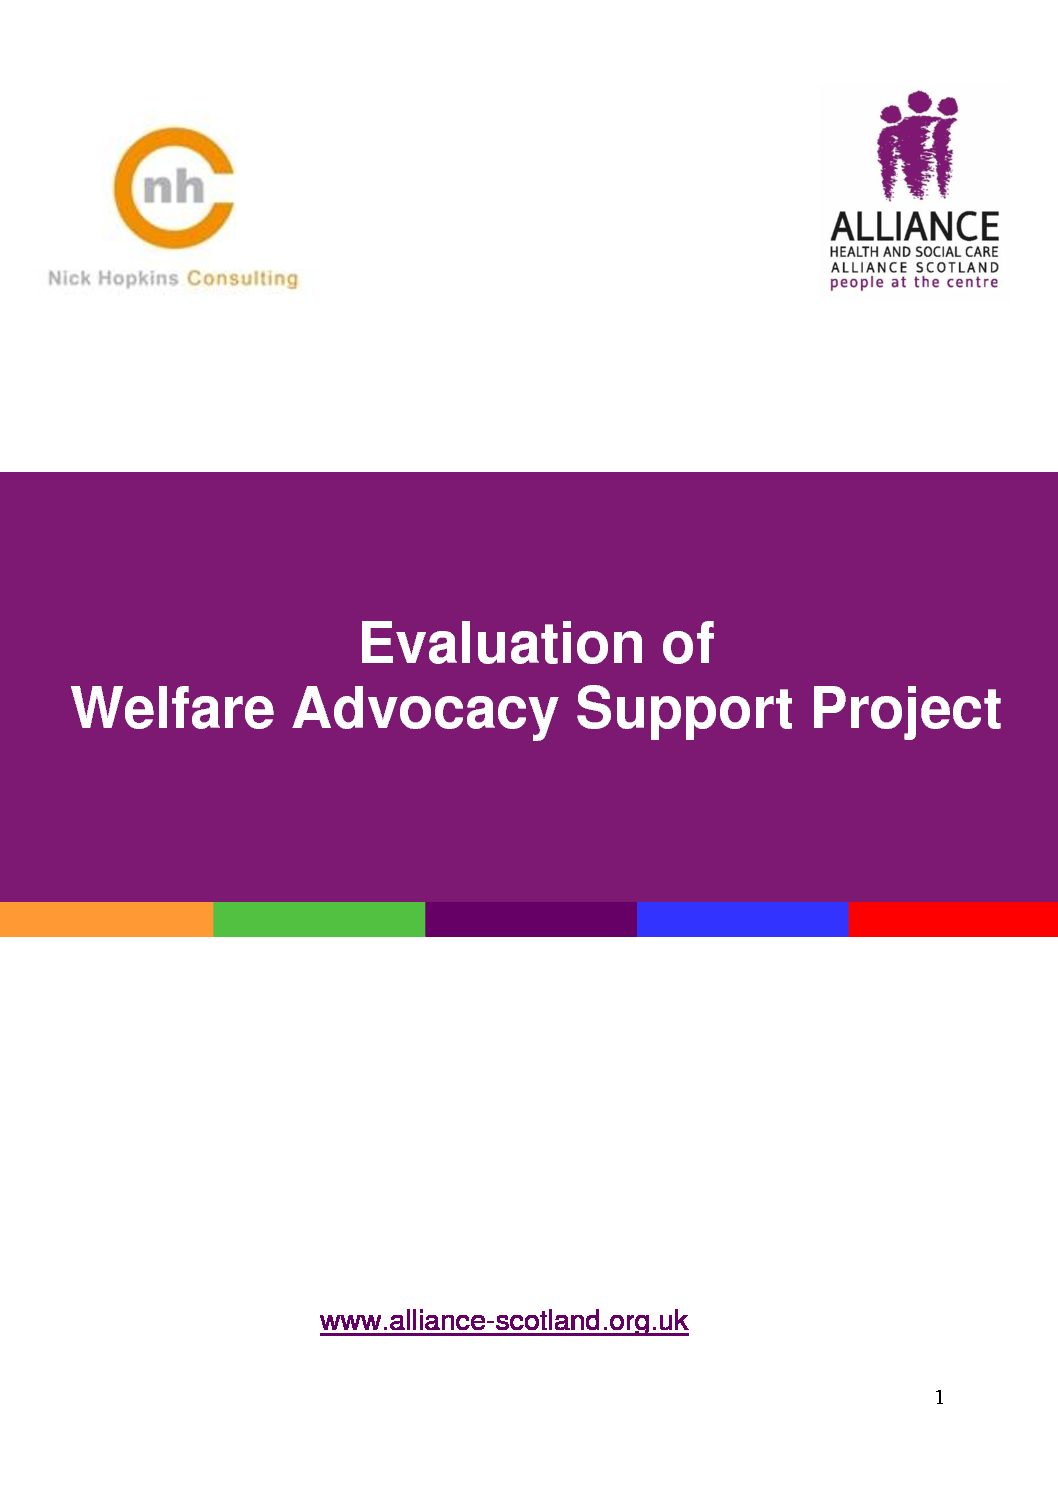 Welfare-Advocacy-Support-Project-Evaluation-Report-Pdf.jpg